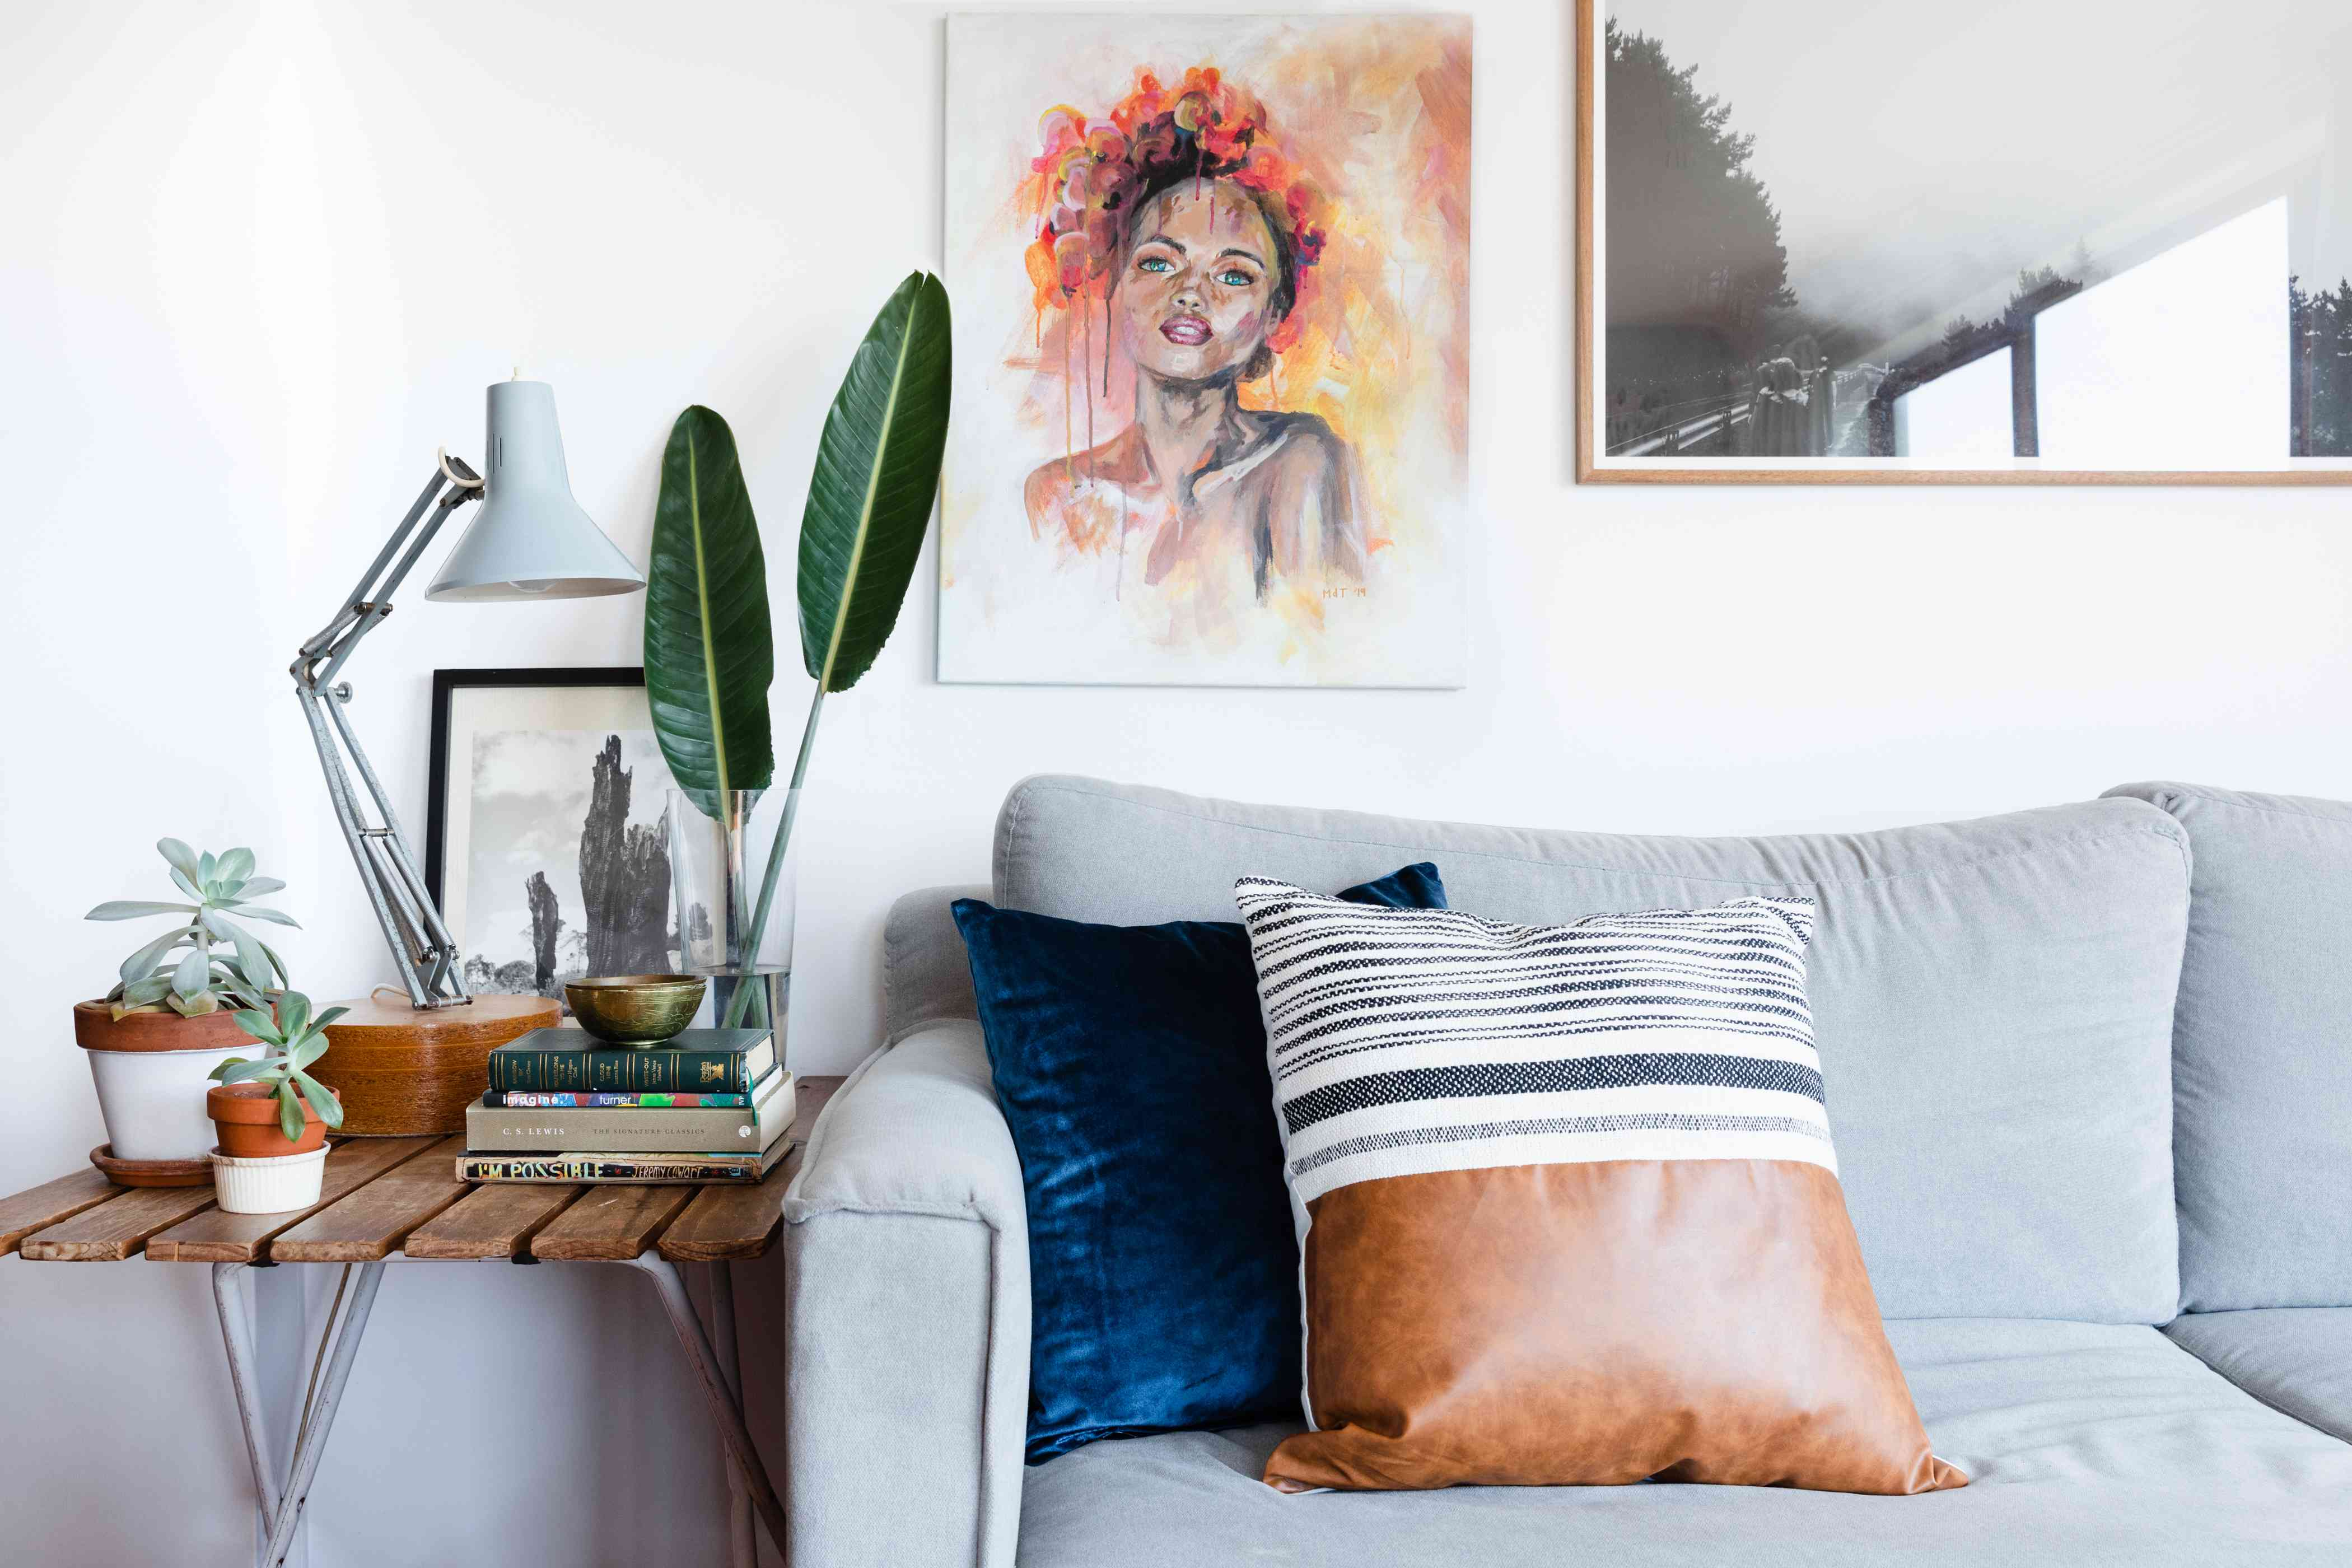 incorporating maximalist elements into your decor without adding clutter